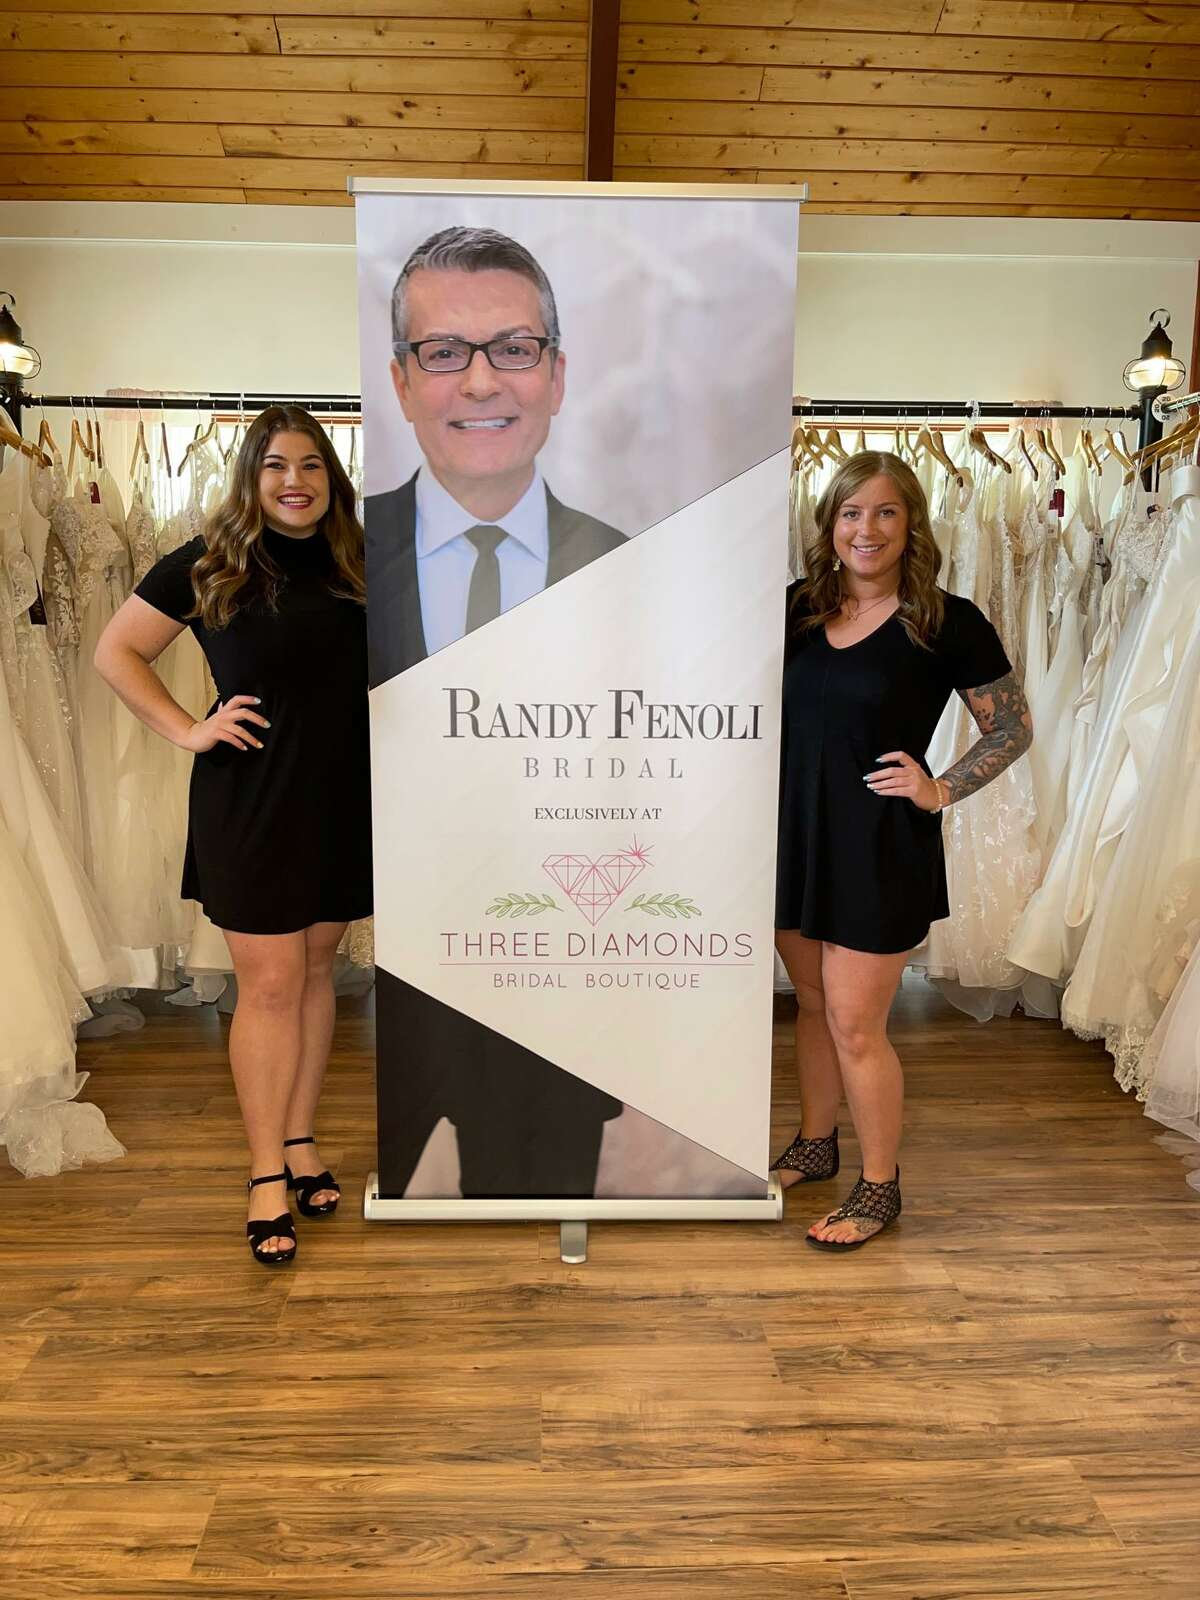 Three Diamonds Bridal will display some of the new line of dresses by designer Randy Fenoli, host of